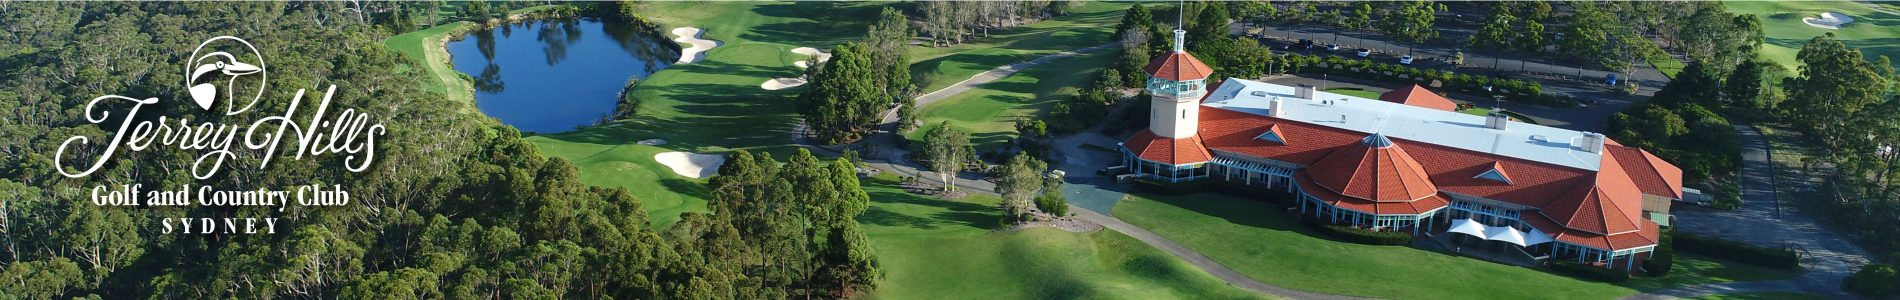 Terrey Hills Golf & Country Club